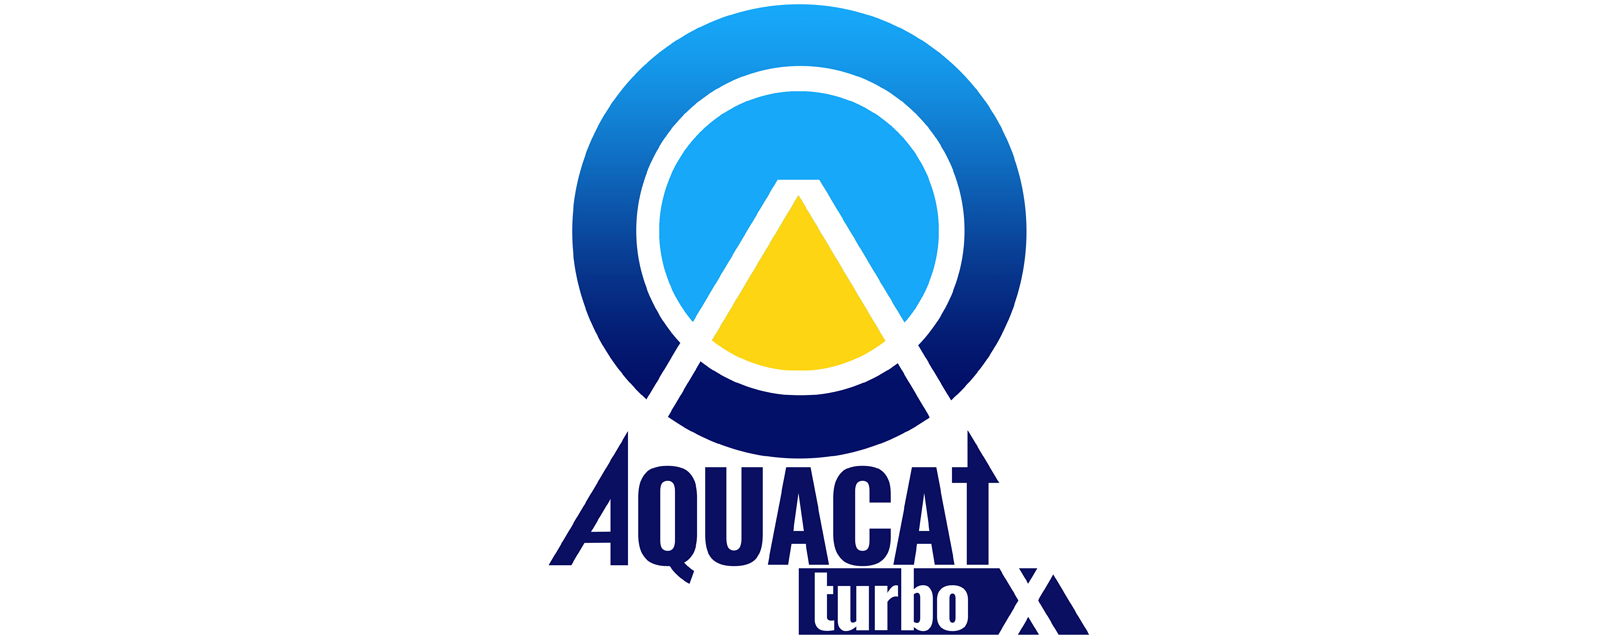 AQUACAT Turbo X Surf-launched RC bait boat